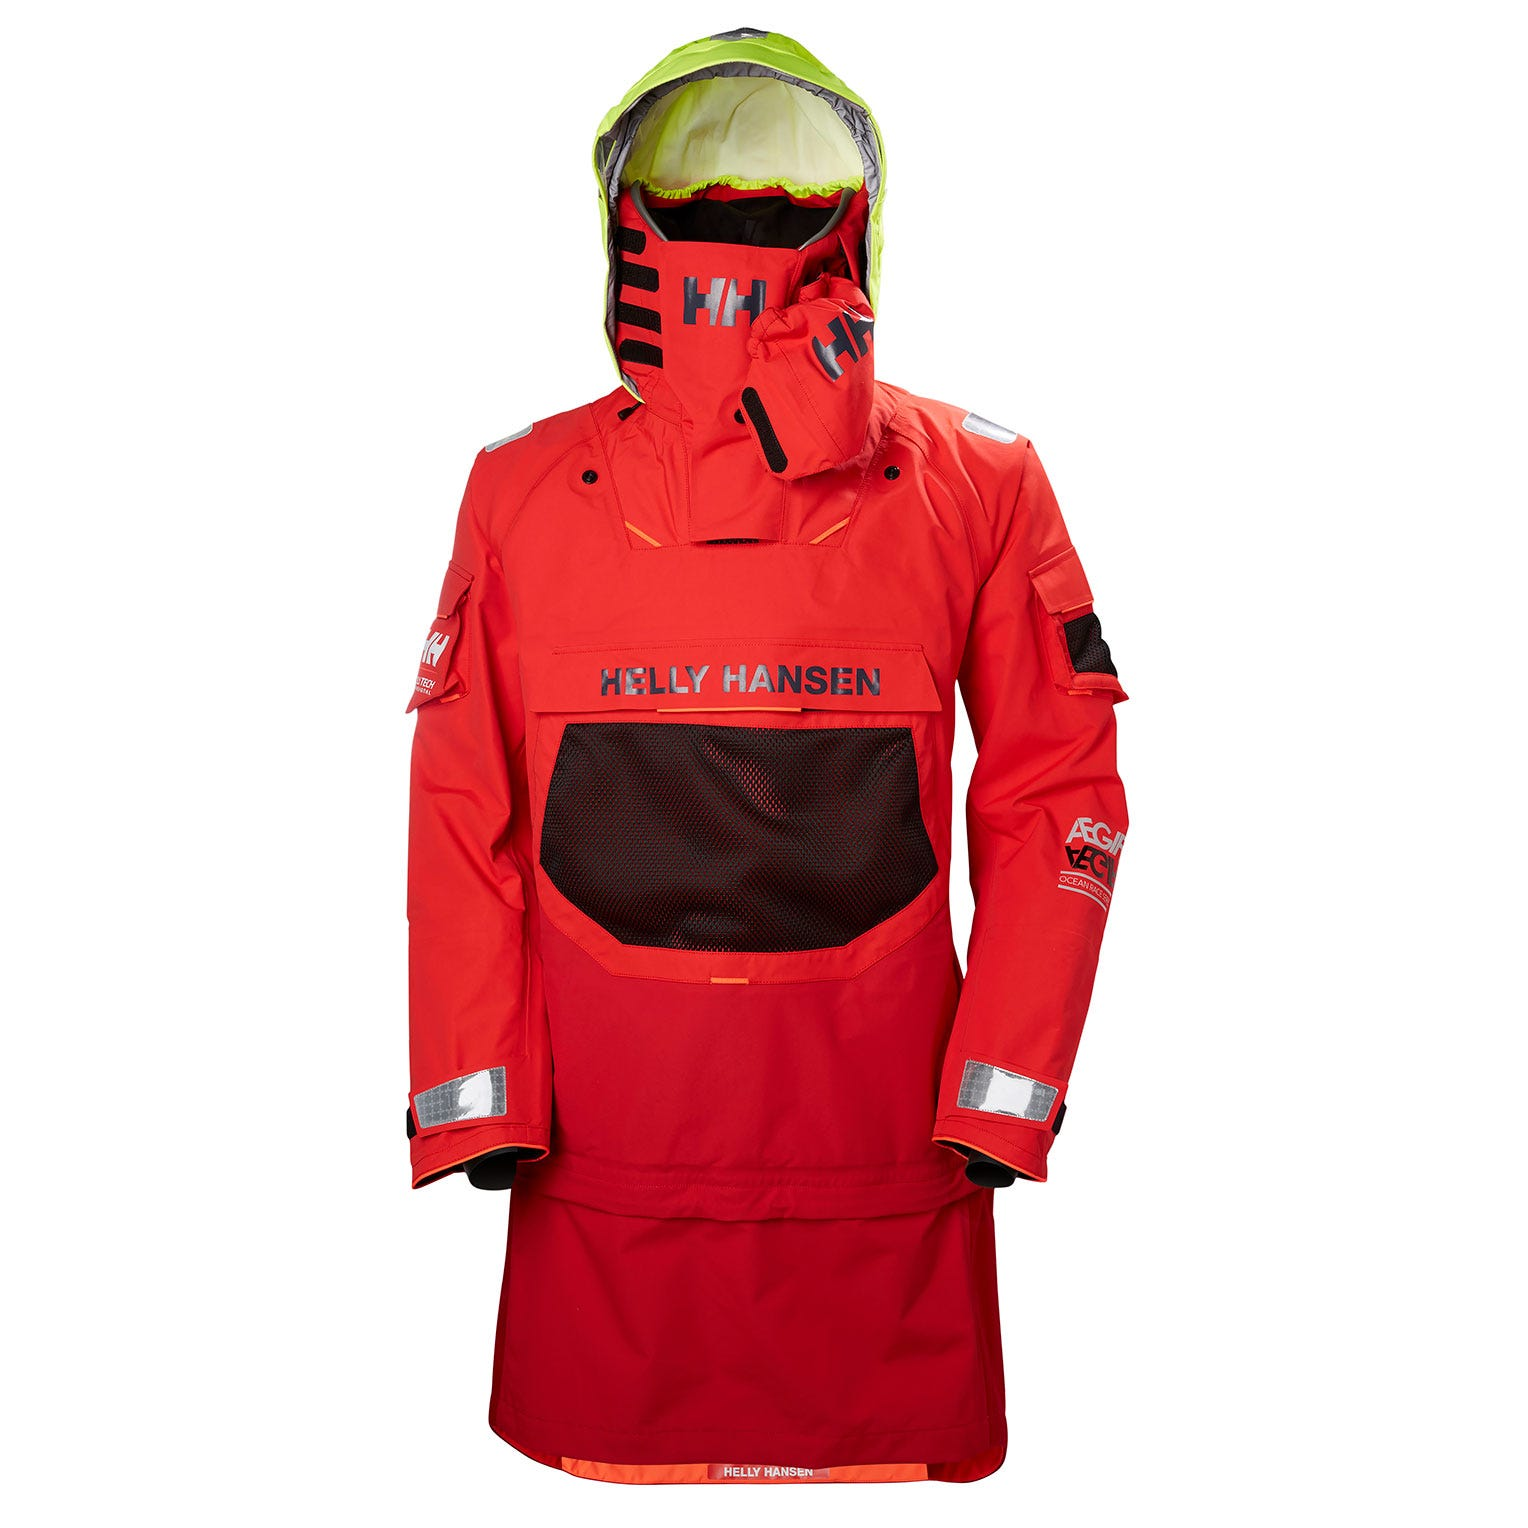 Helly Hansen Ægir Ocean Dry Top Sailing Jacket Red XS